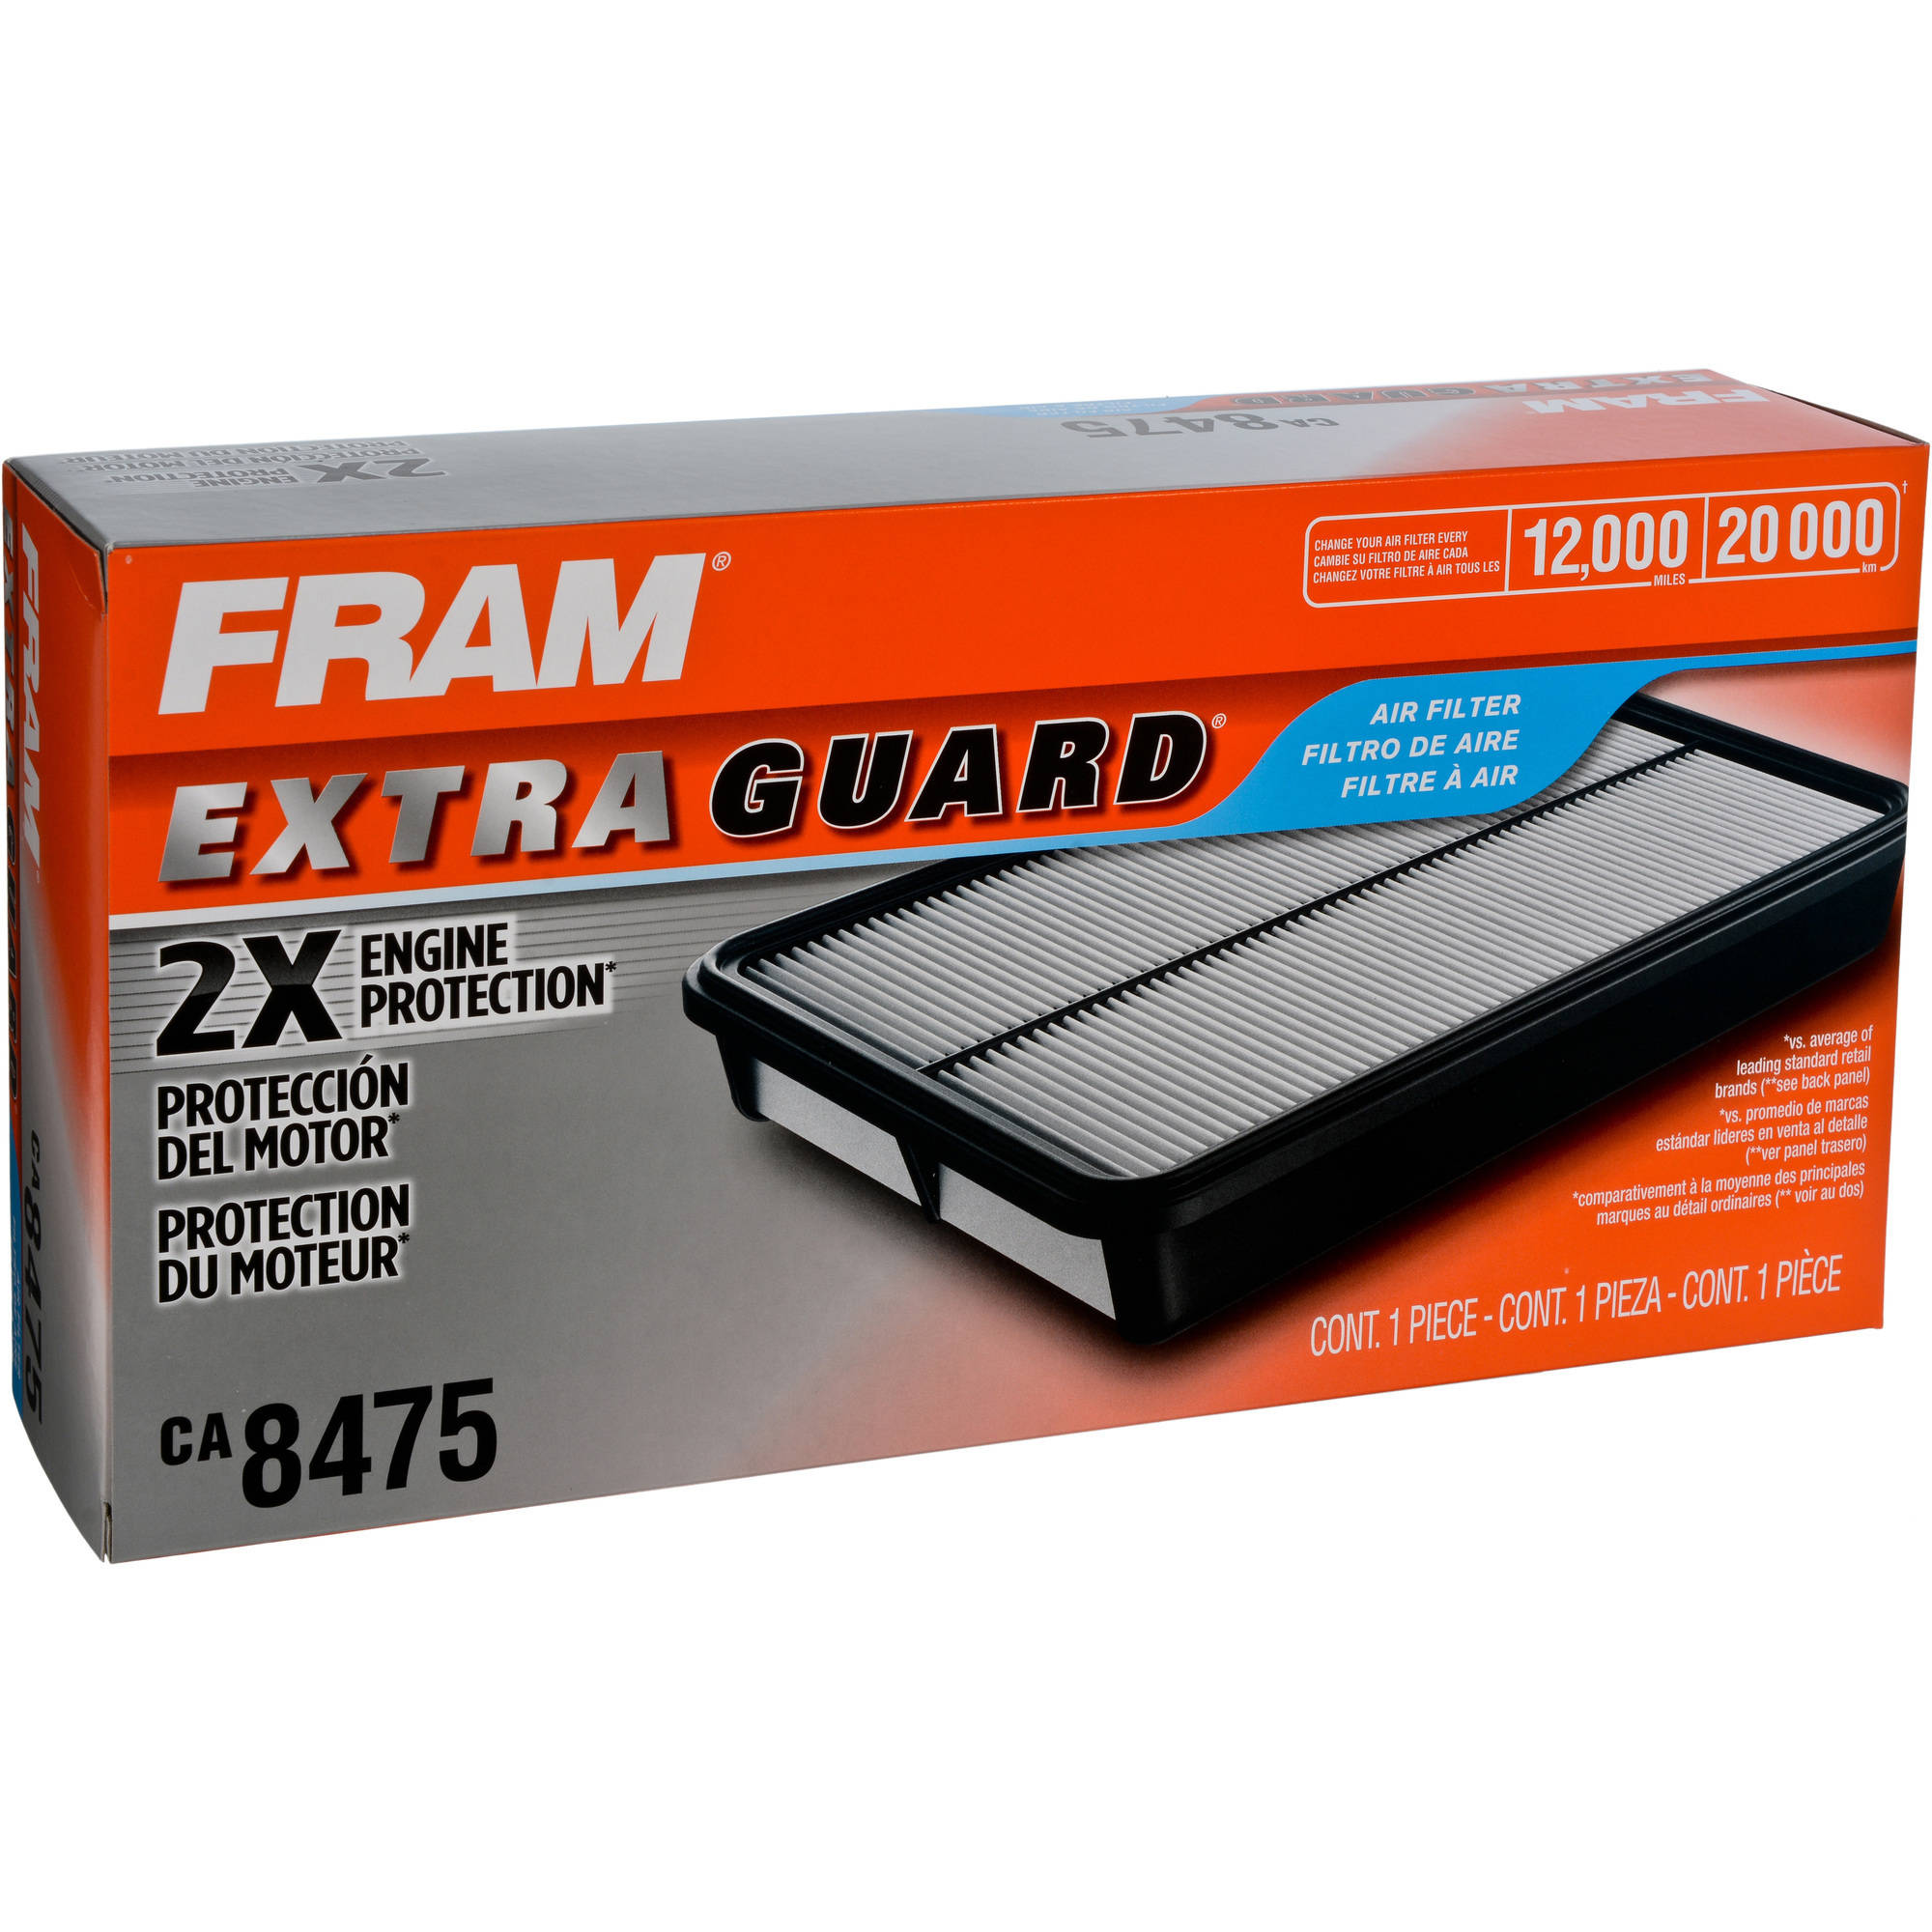 FRAM Extra Guard Air Filter, CA8475